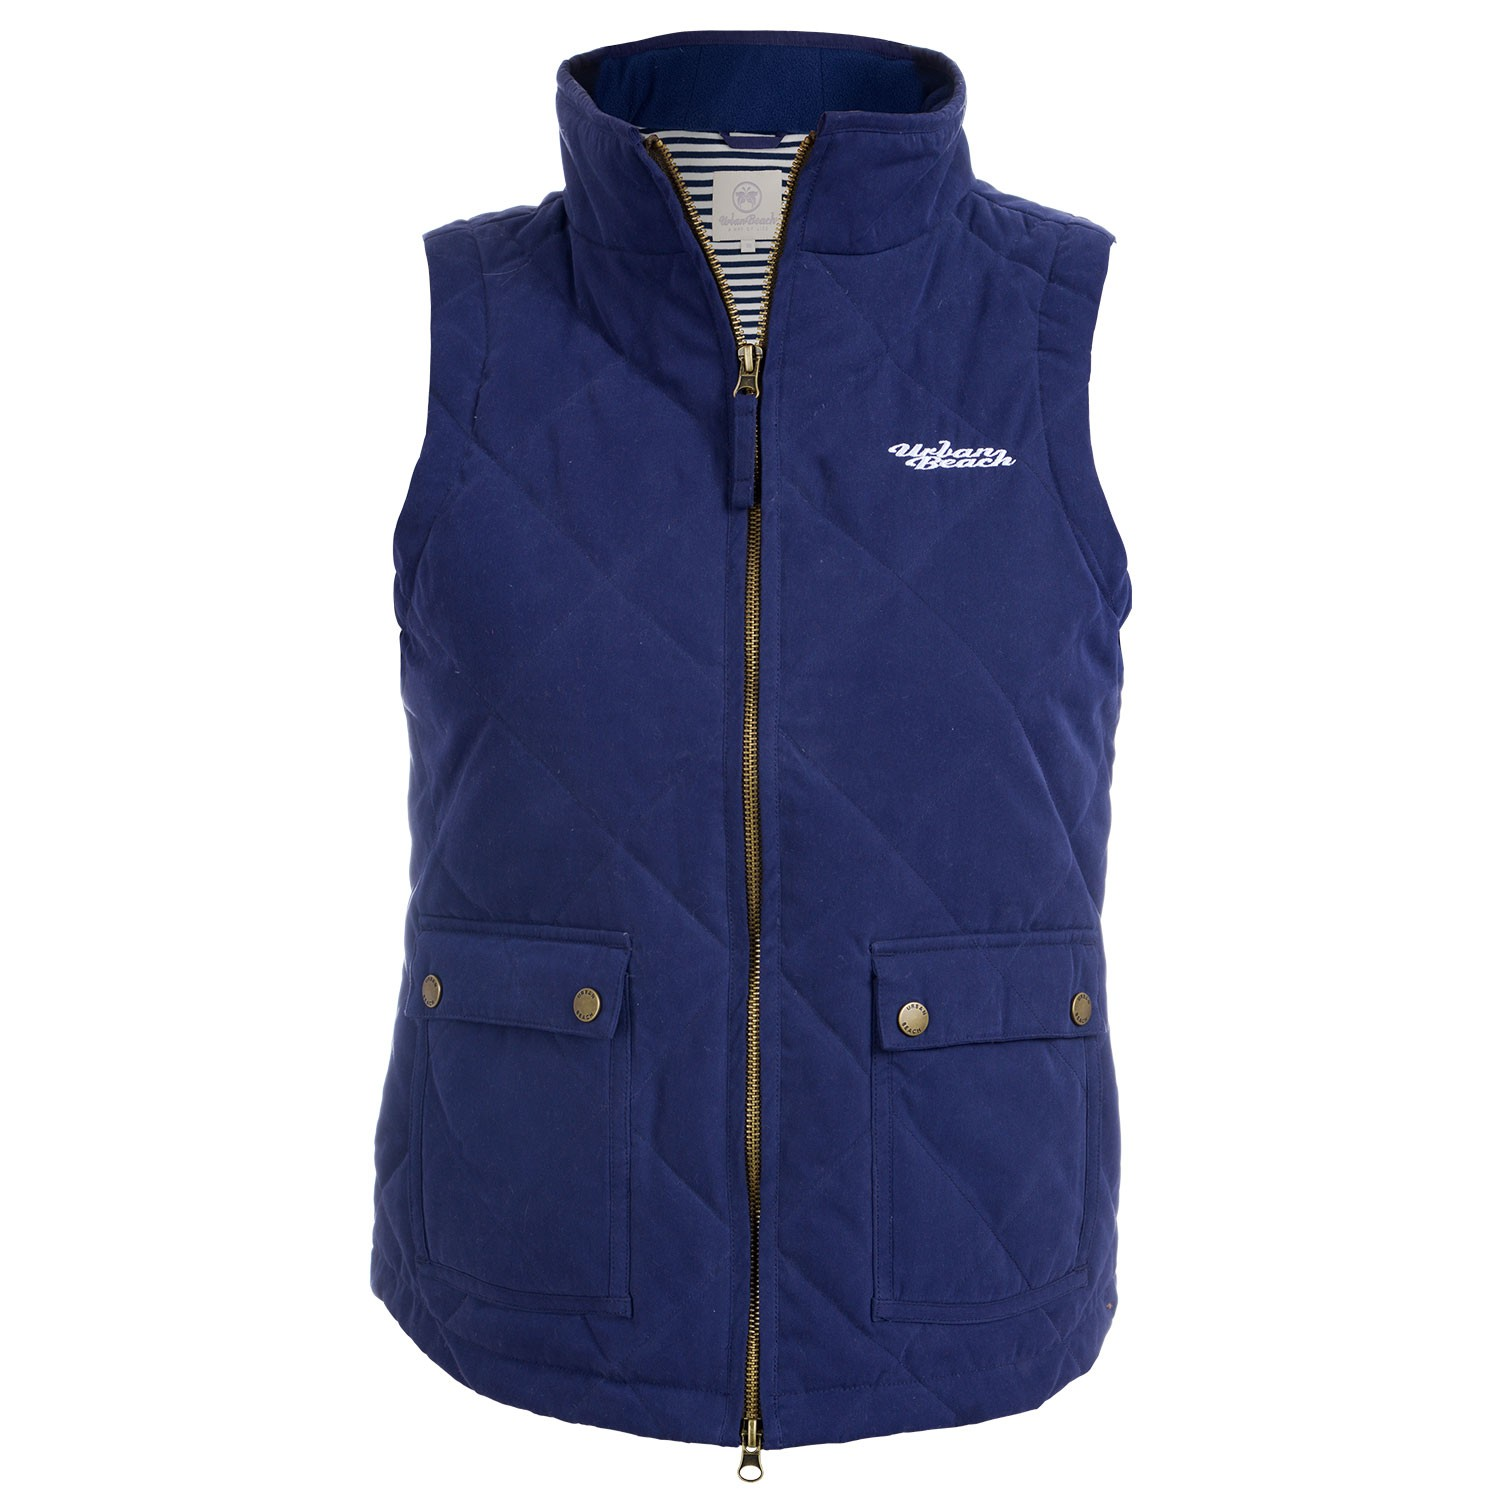 Womens Navy Quilted Gilet Carlo - Free Delivery Over £20 - Urban Beach : quilted gillet - Adamdwight.com